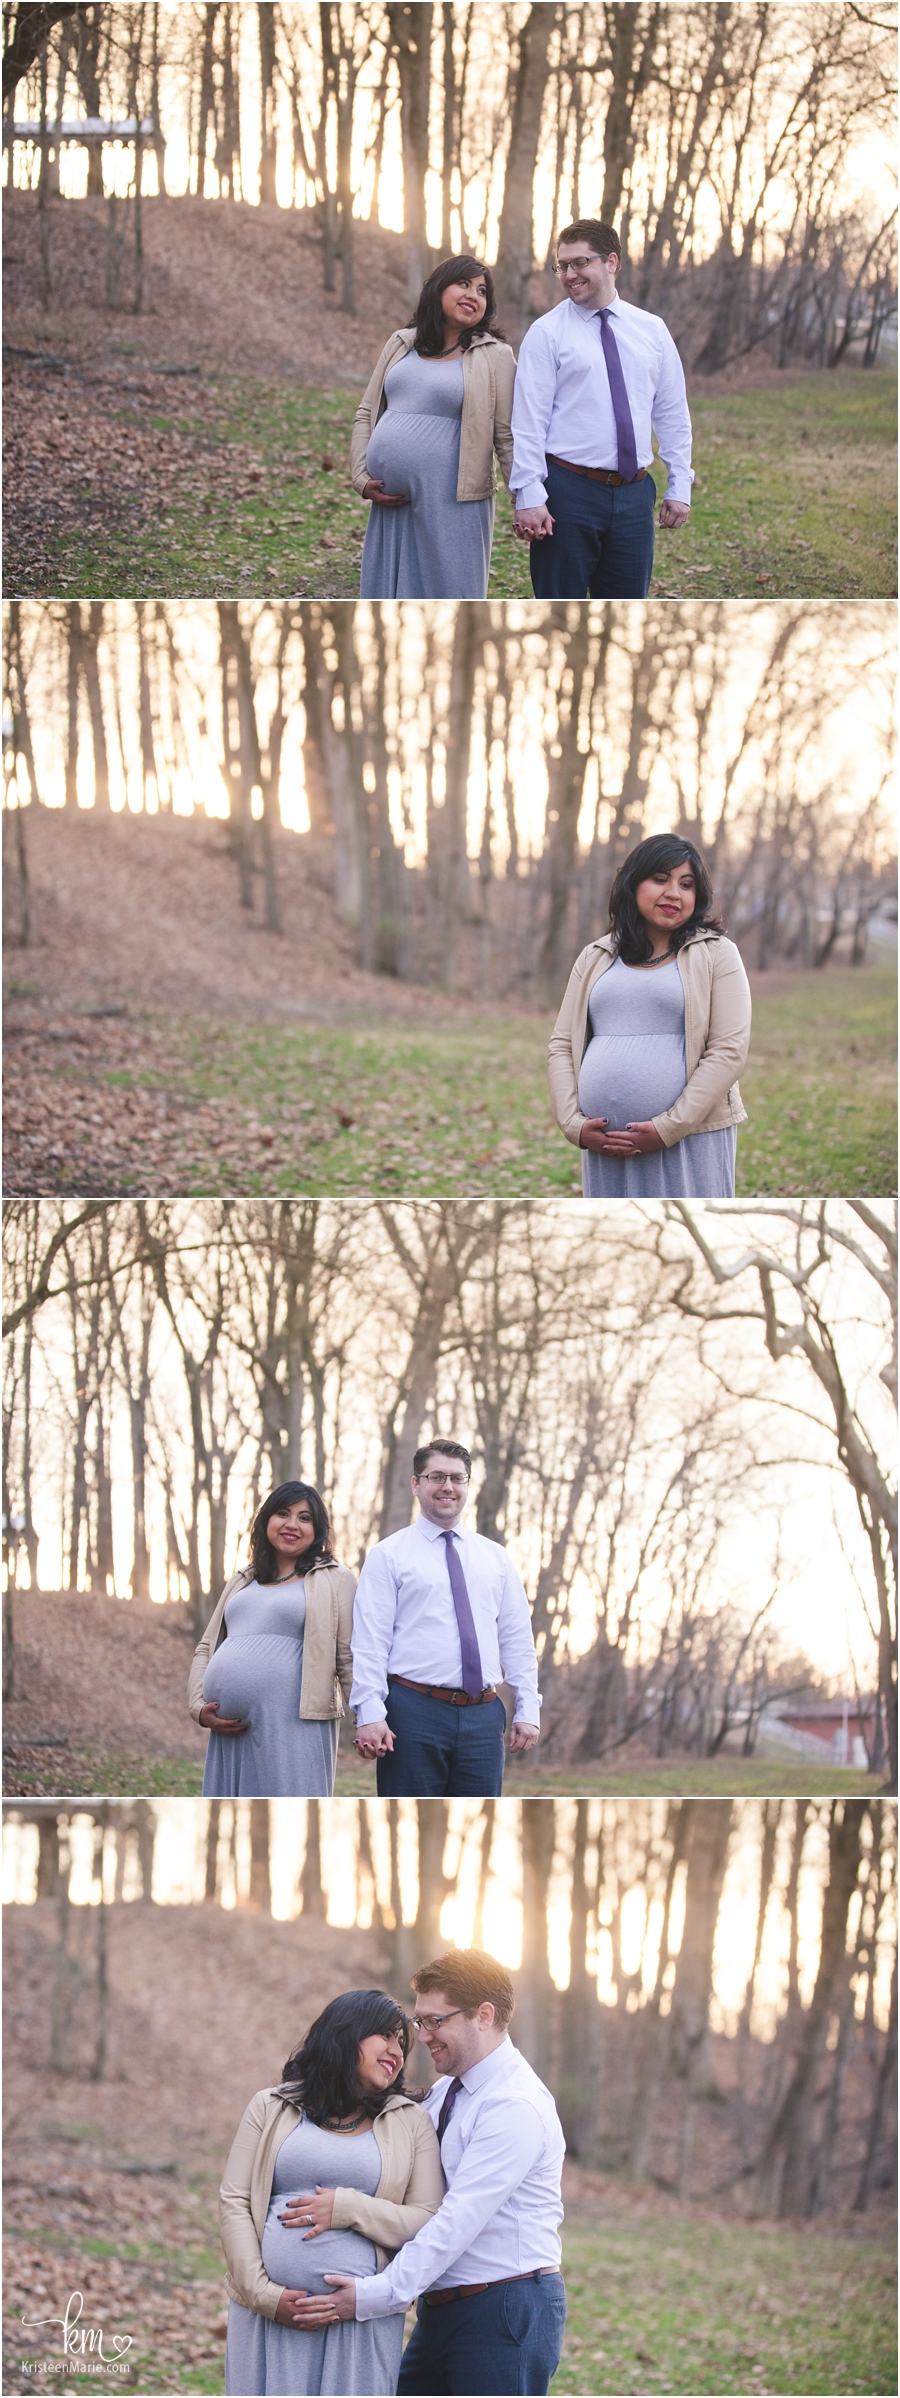 mom and dad expecting - family maternity pictures/poses